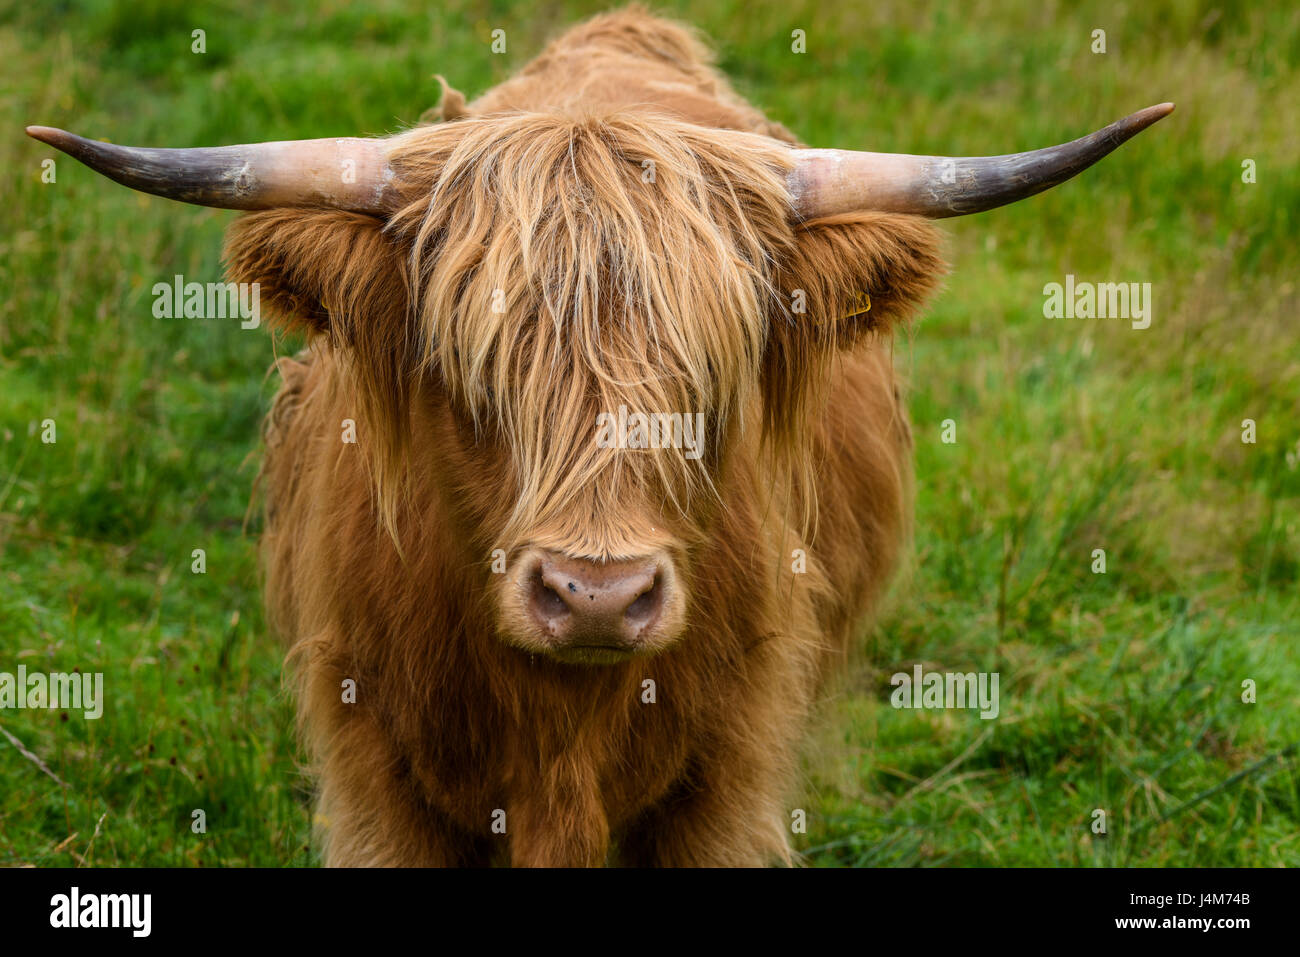 Vache. Scotish Highland cattle dans portrait ; Highlands, Ecosse, Royaume-Uni Photo Stock